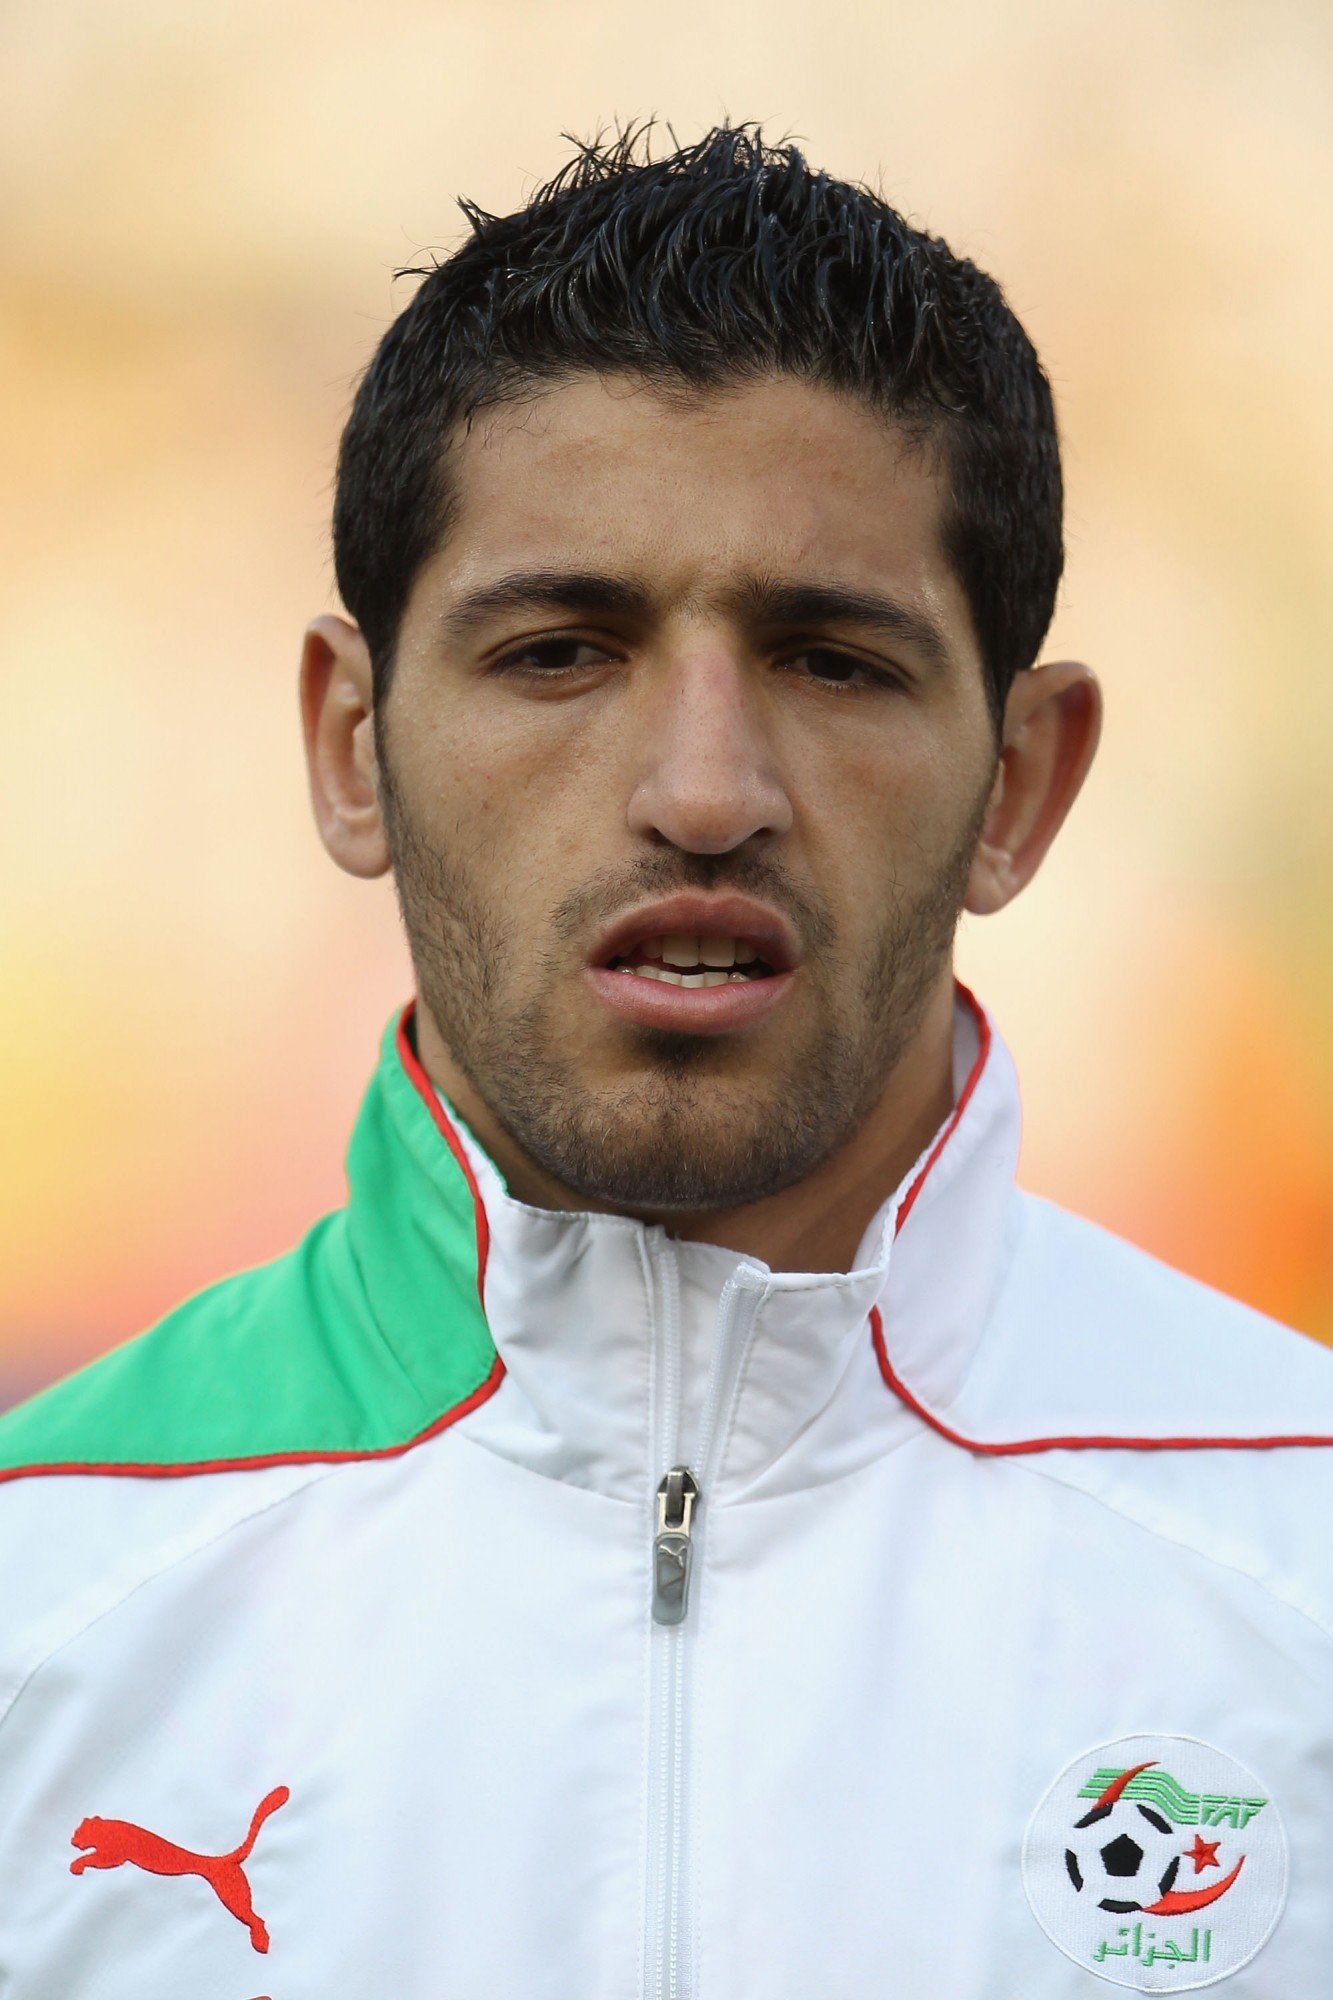 PRETORIA, SOUTH AFRICA - JUNE 23: Rafik Halliche of Algeria ahead of the 2010 FIFA World Cup South Africa Group C match between USA and Algeria at the Loftus Versfeld Stadium on June 23, 2010 in Tshwane/Pretoria, South Africa. (Photo by Phil Cole/Getty Images)